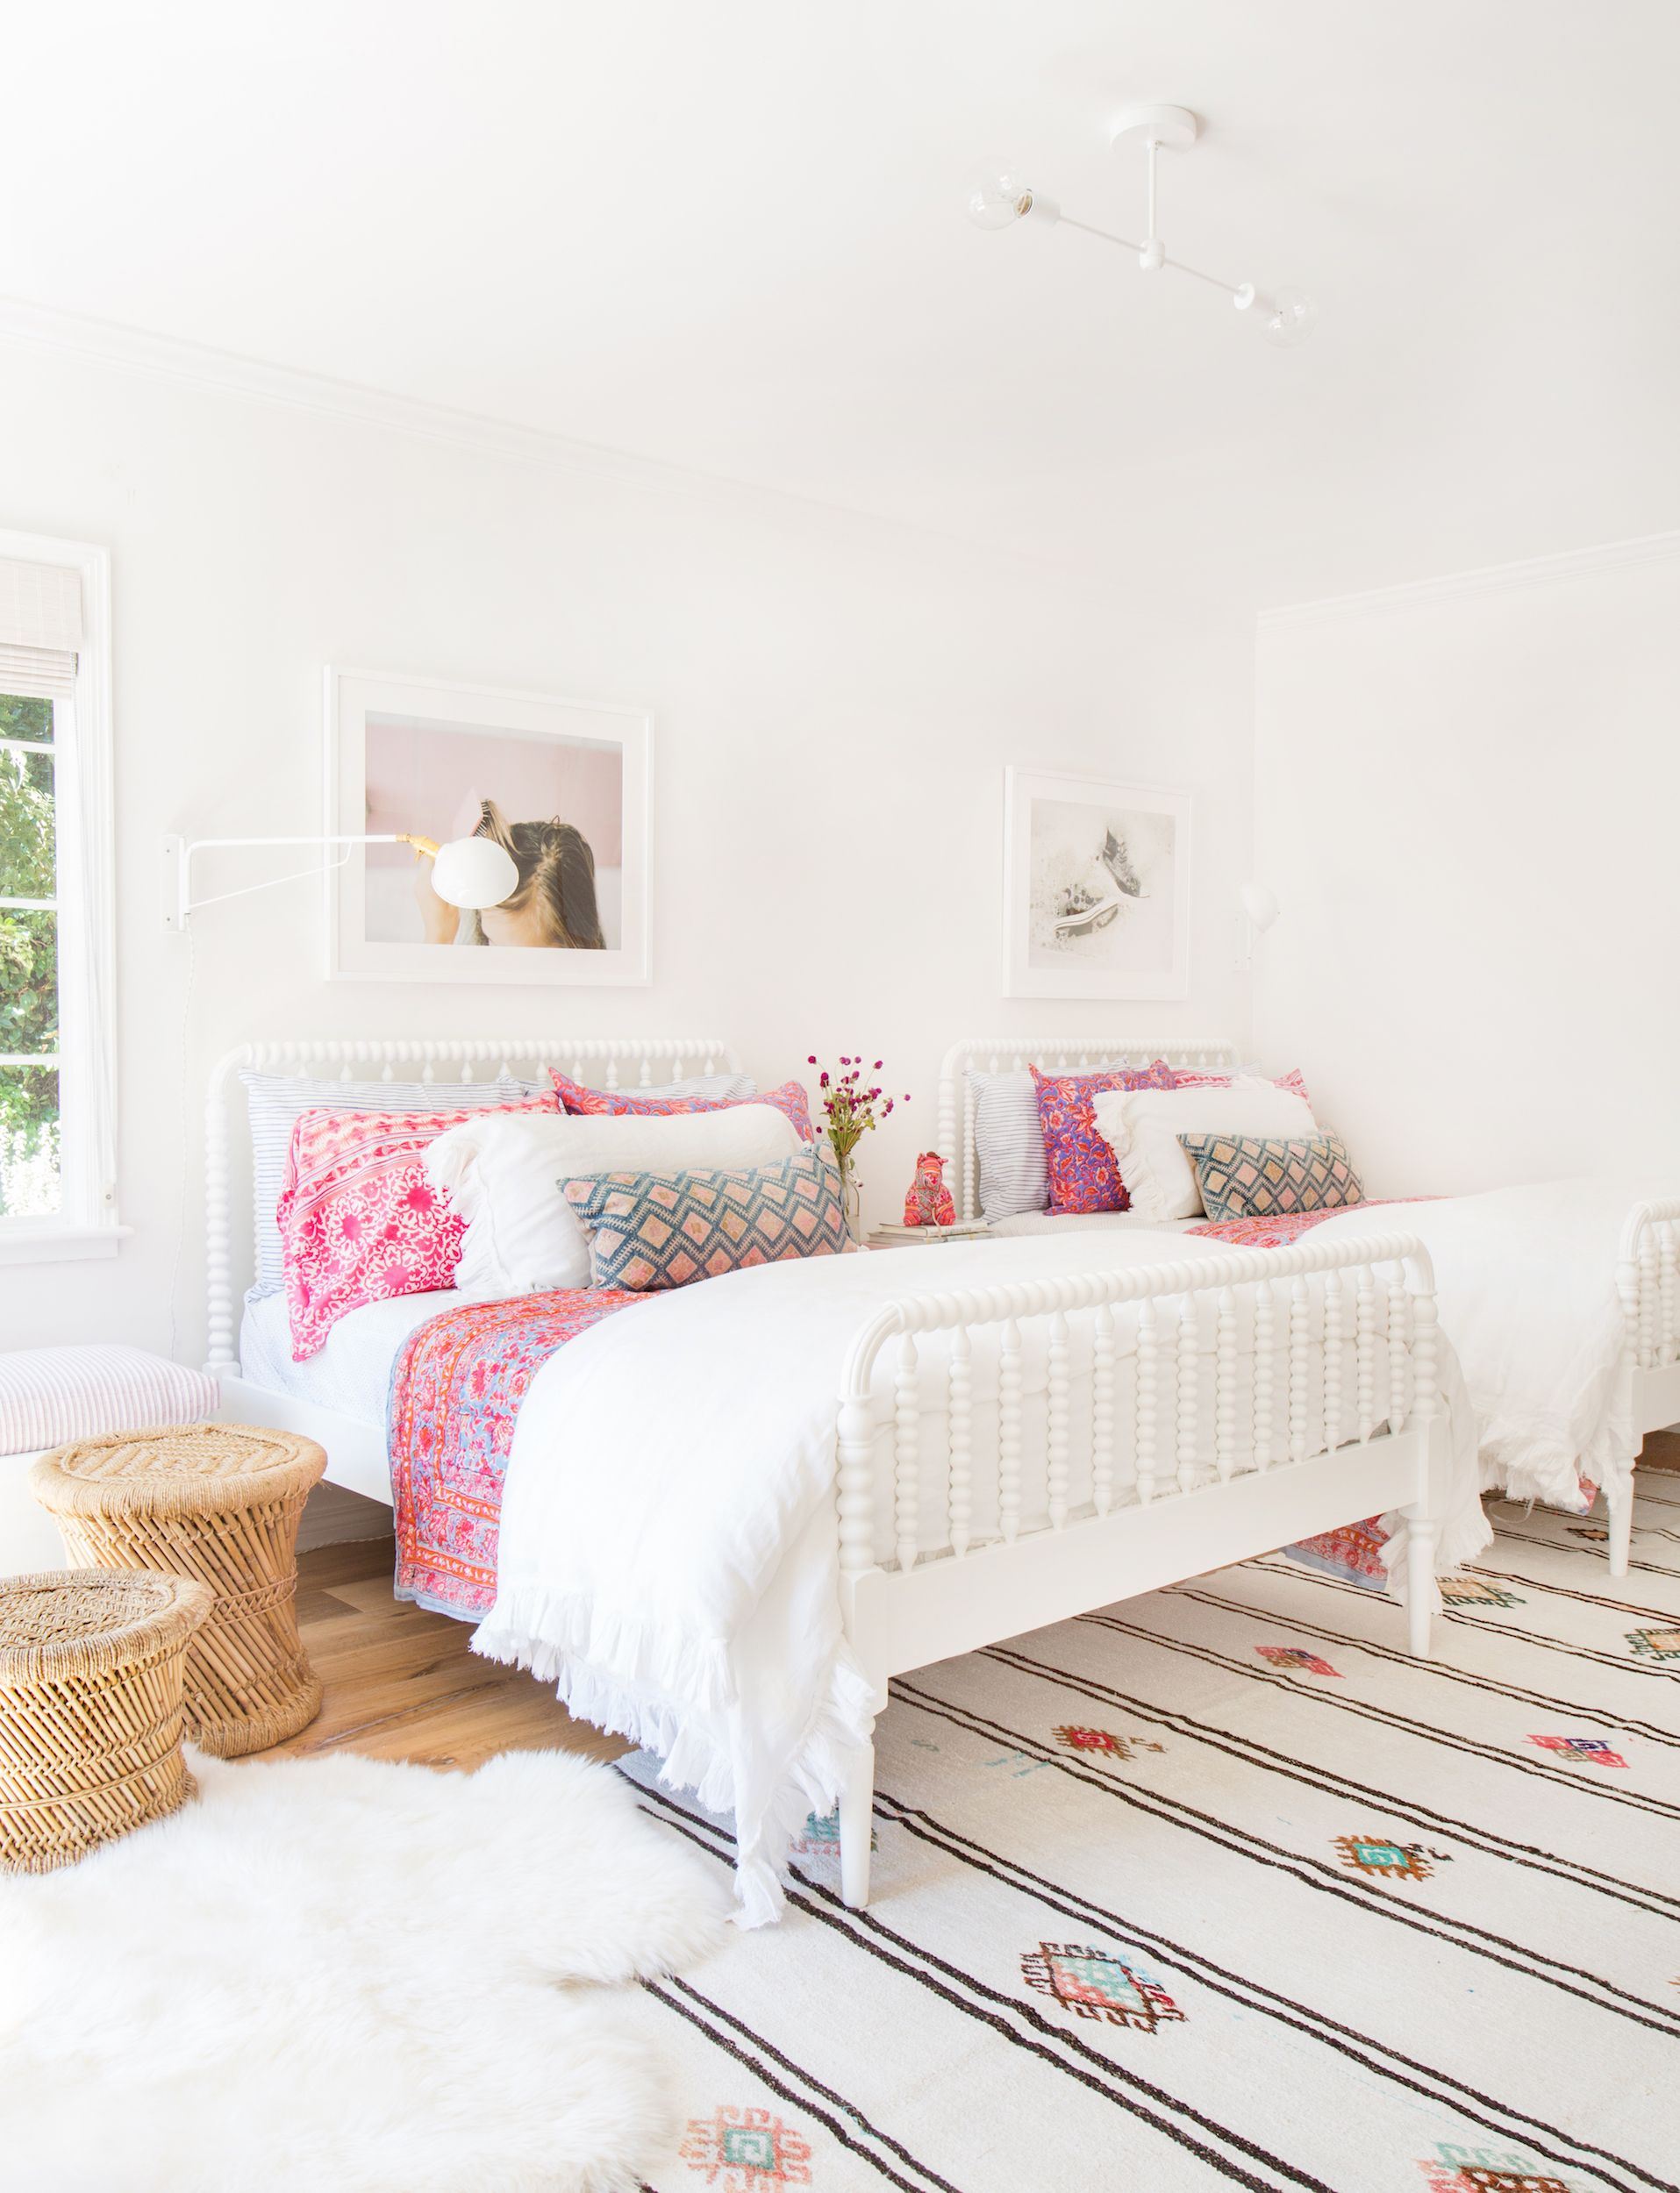 image & 10 Best Teen Bedroom Ideas - Cool Teenage Room Decor for Girls and Boys